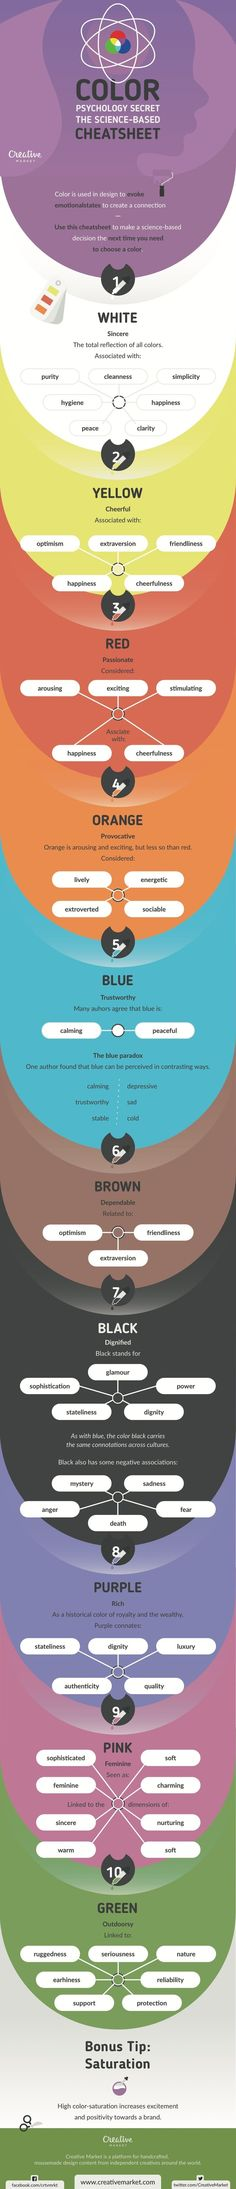 How to Use Colour Science to Create a New Website [Infographic]